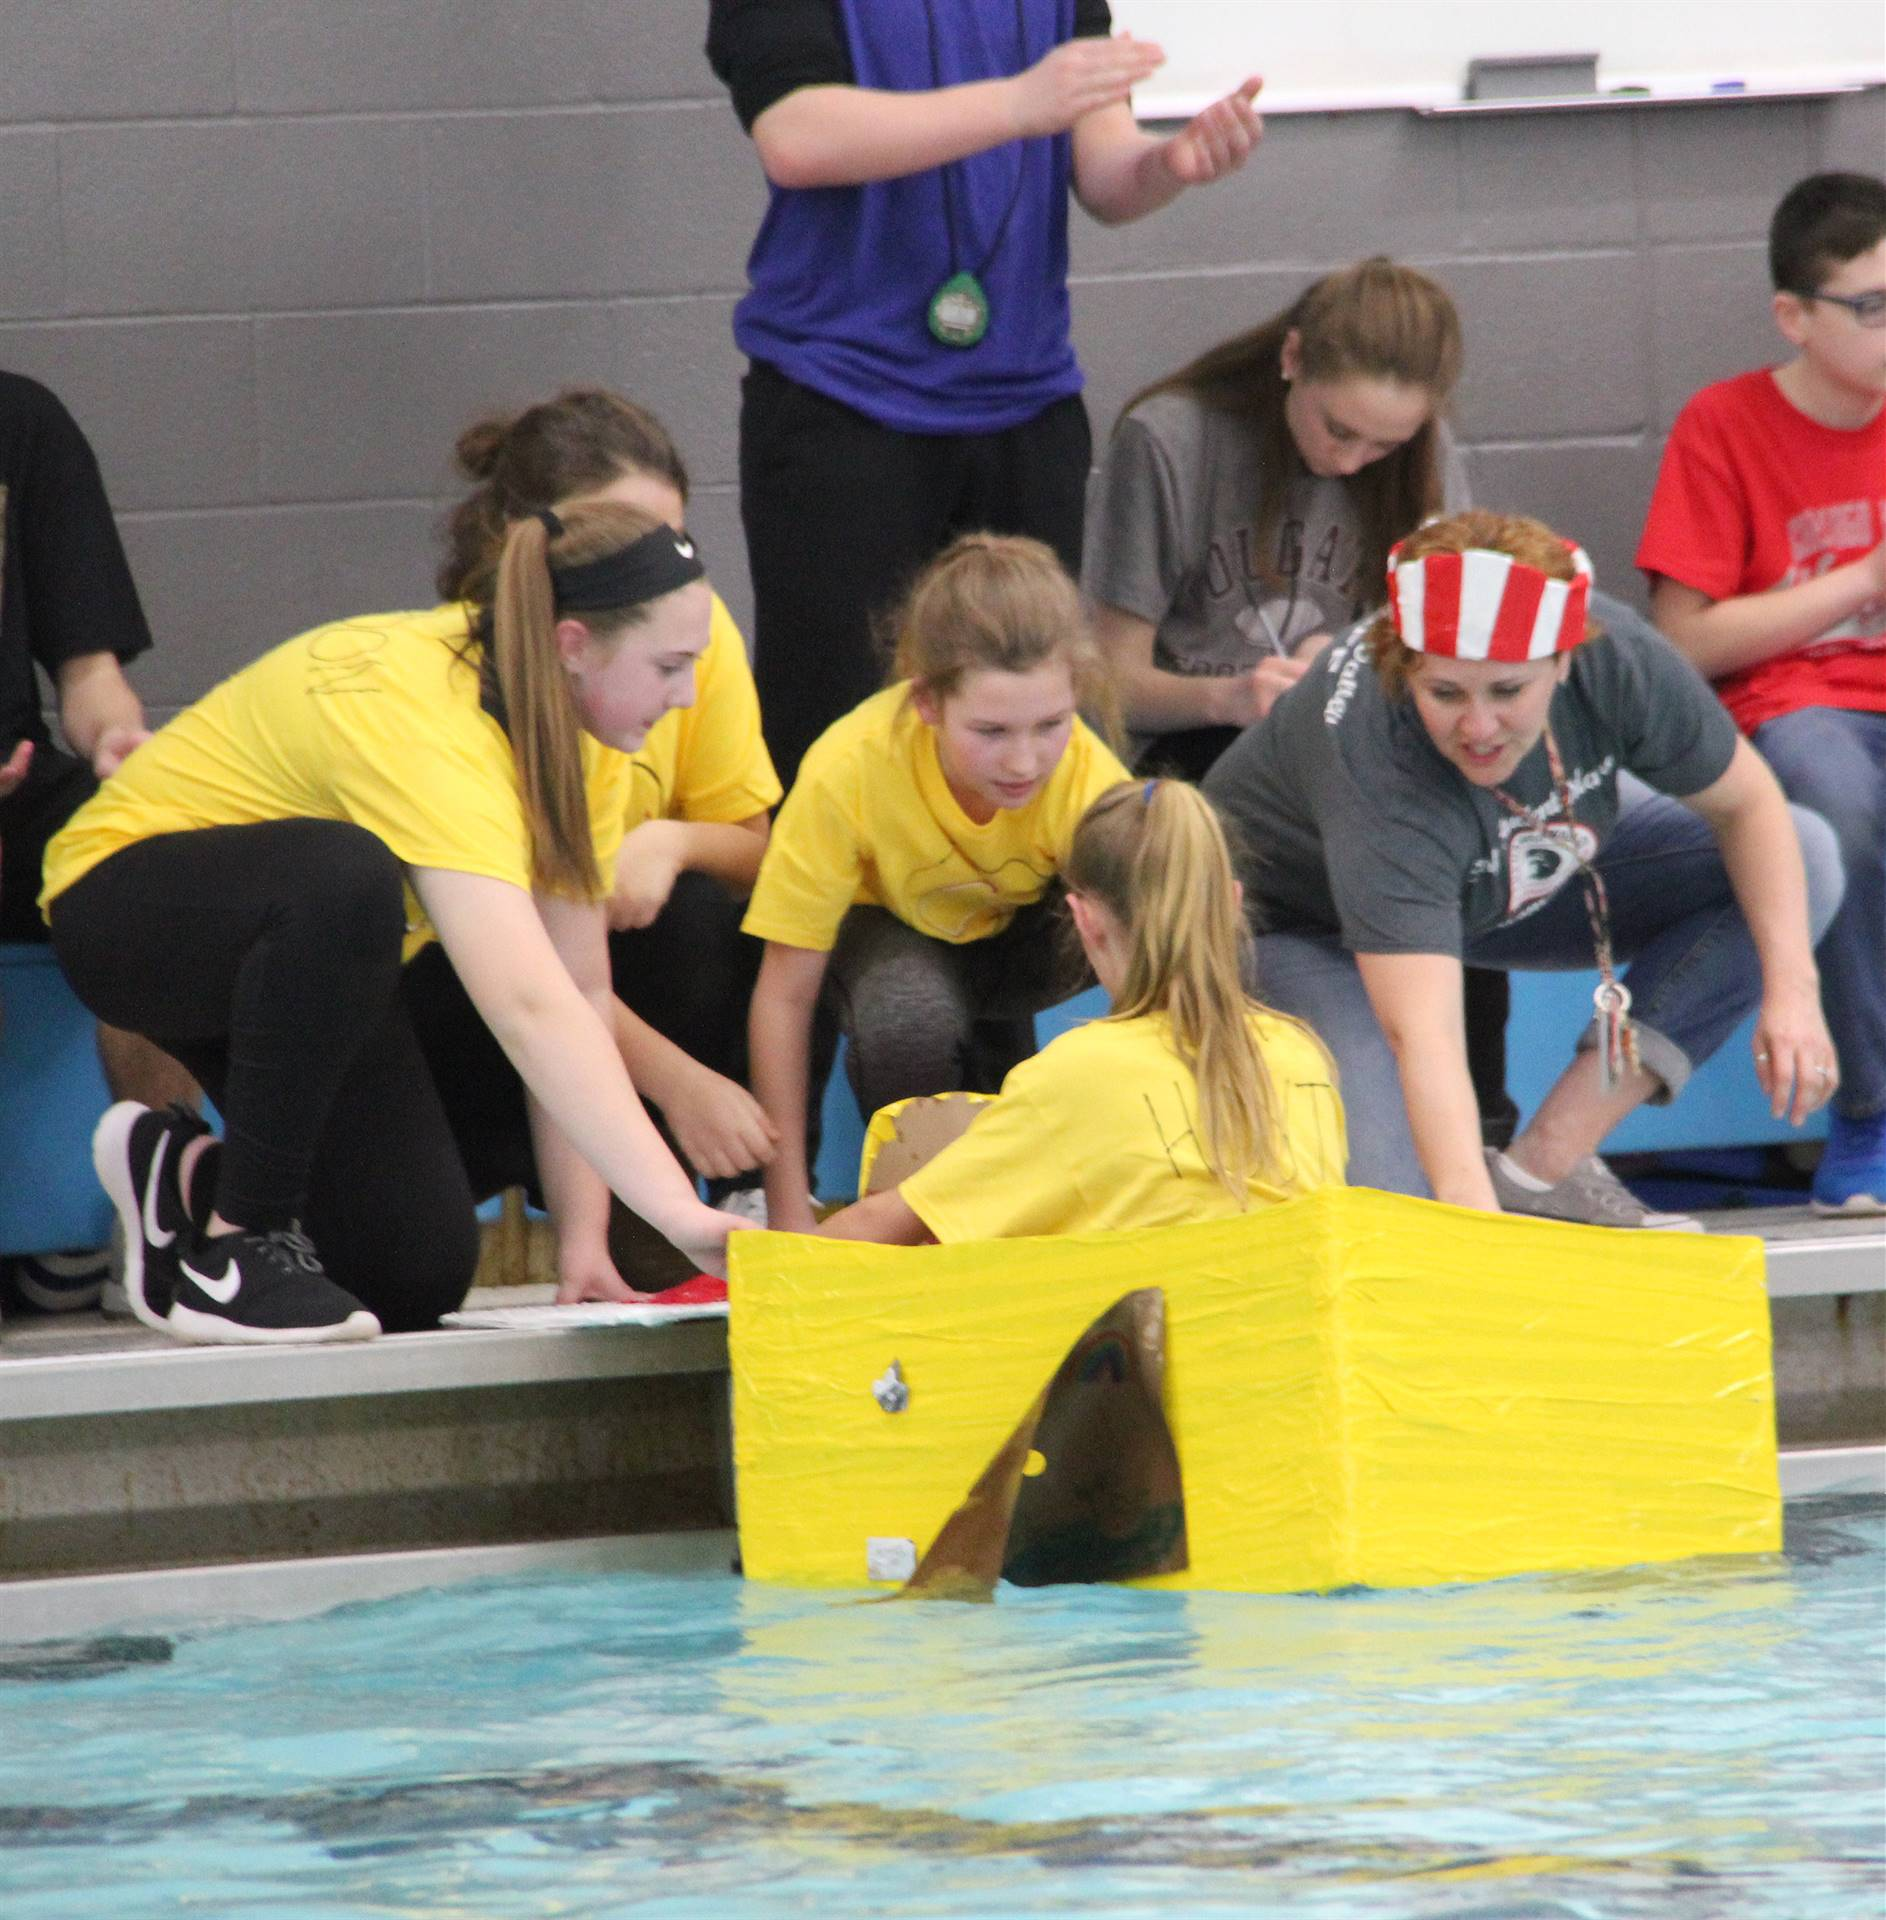 Middle School Cardboard Boat Races 45